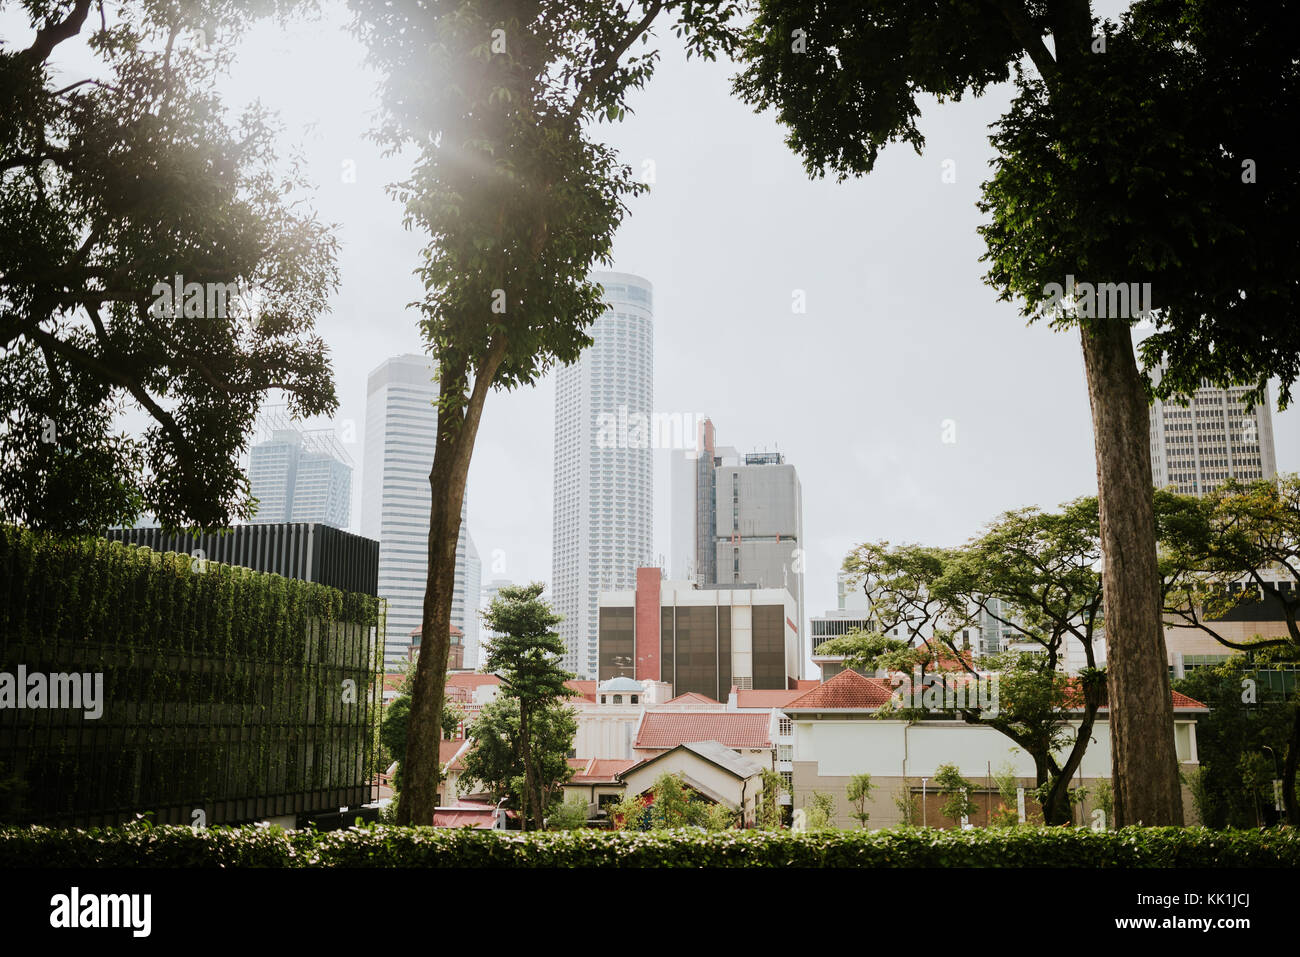 Singapore cityscape. Different architecture styles from colonial to modern. - Stock Image